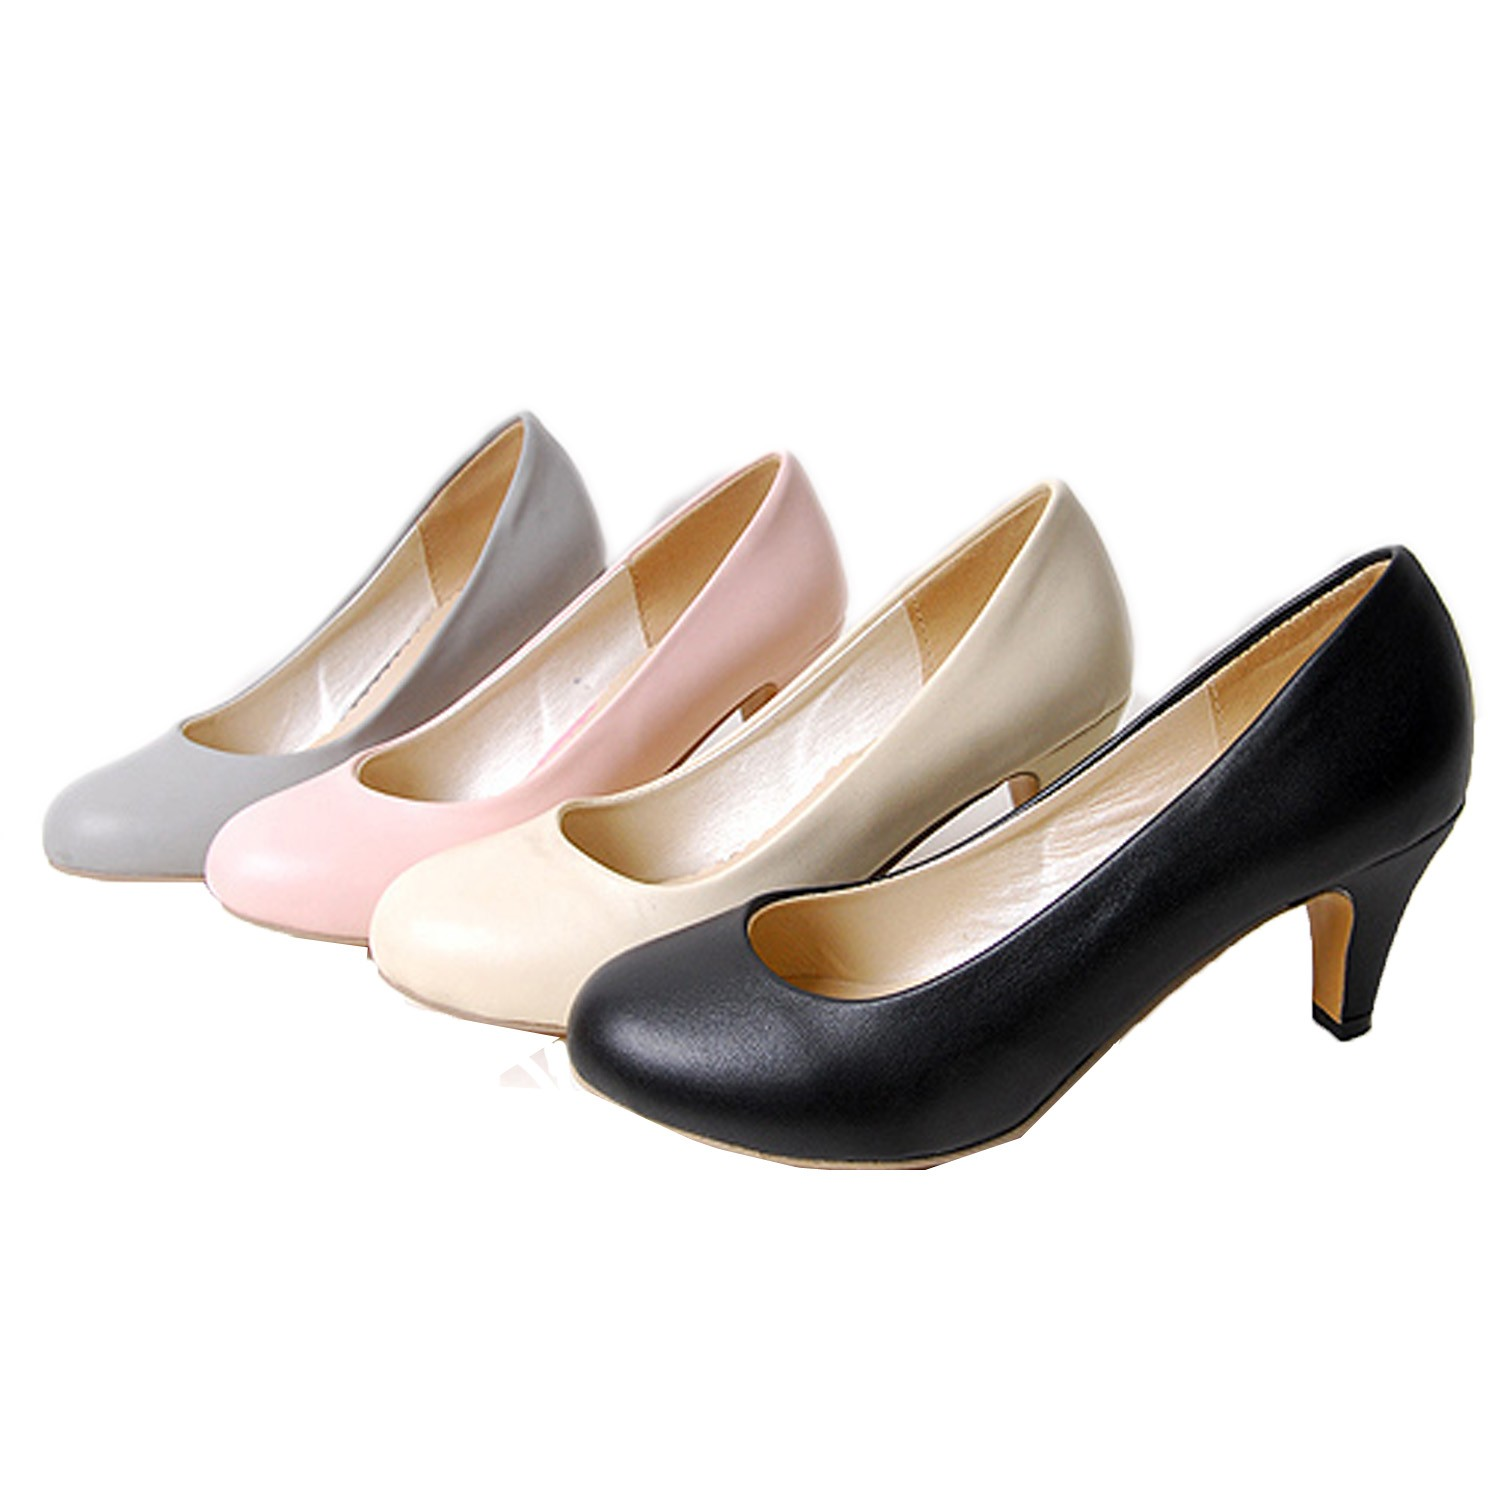 Beige/Black/Grey/Pink Sz 34-39 High Kitten Heels Pump Court Shoes AU 4 5 6 7